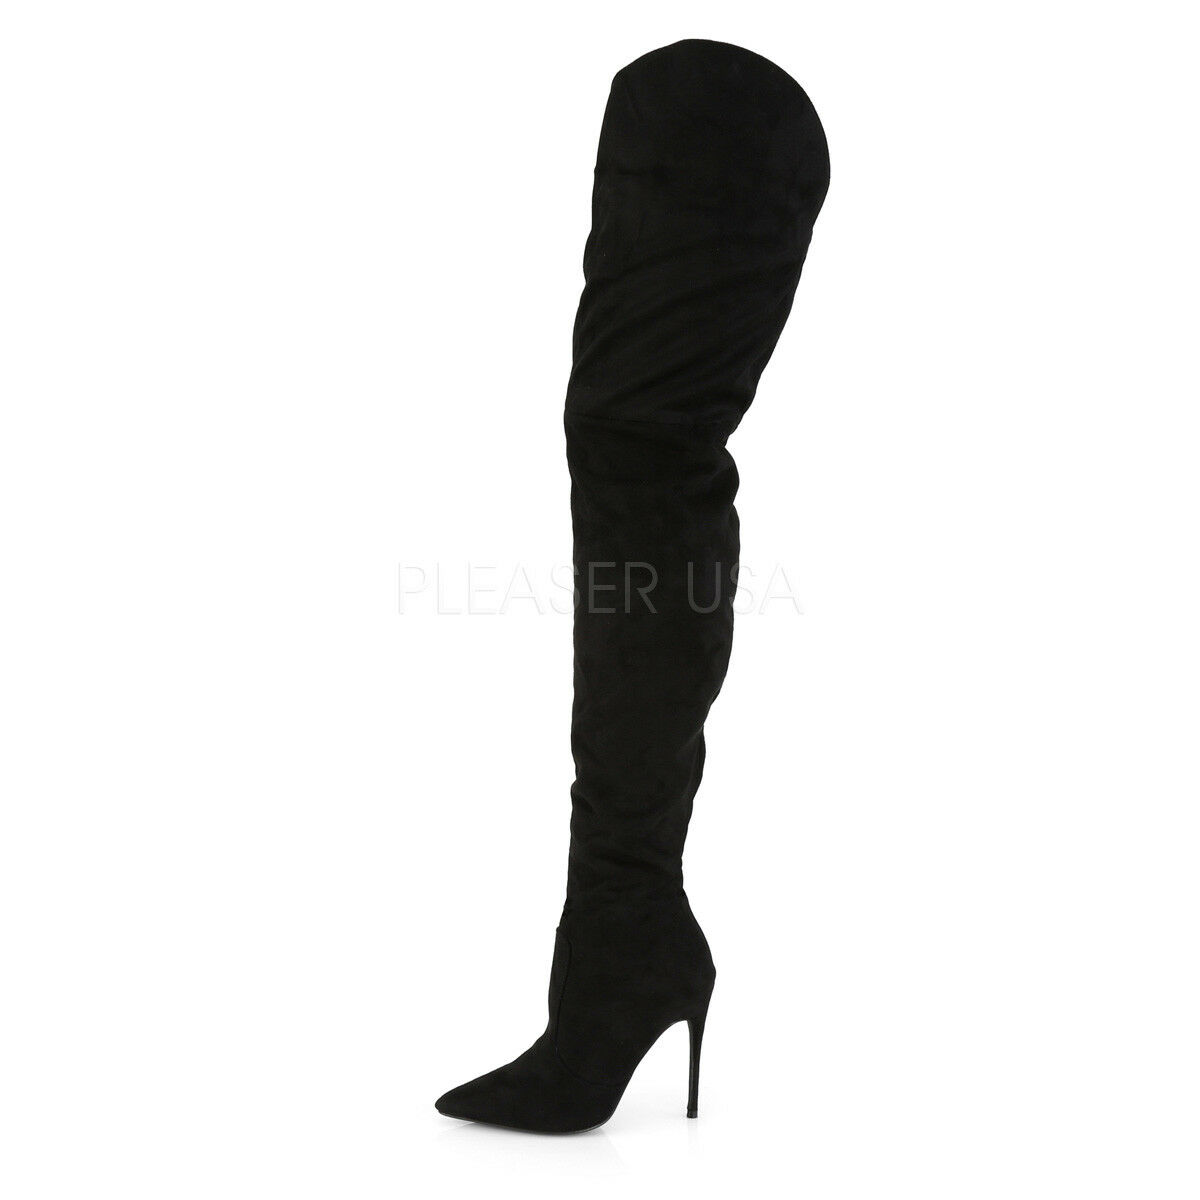 Black Vegan Suede Cortly 3017 Thigh High Credch Boots 5  High Heel 6 - 14